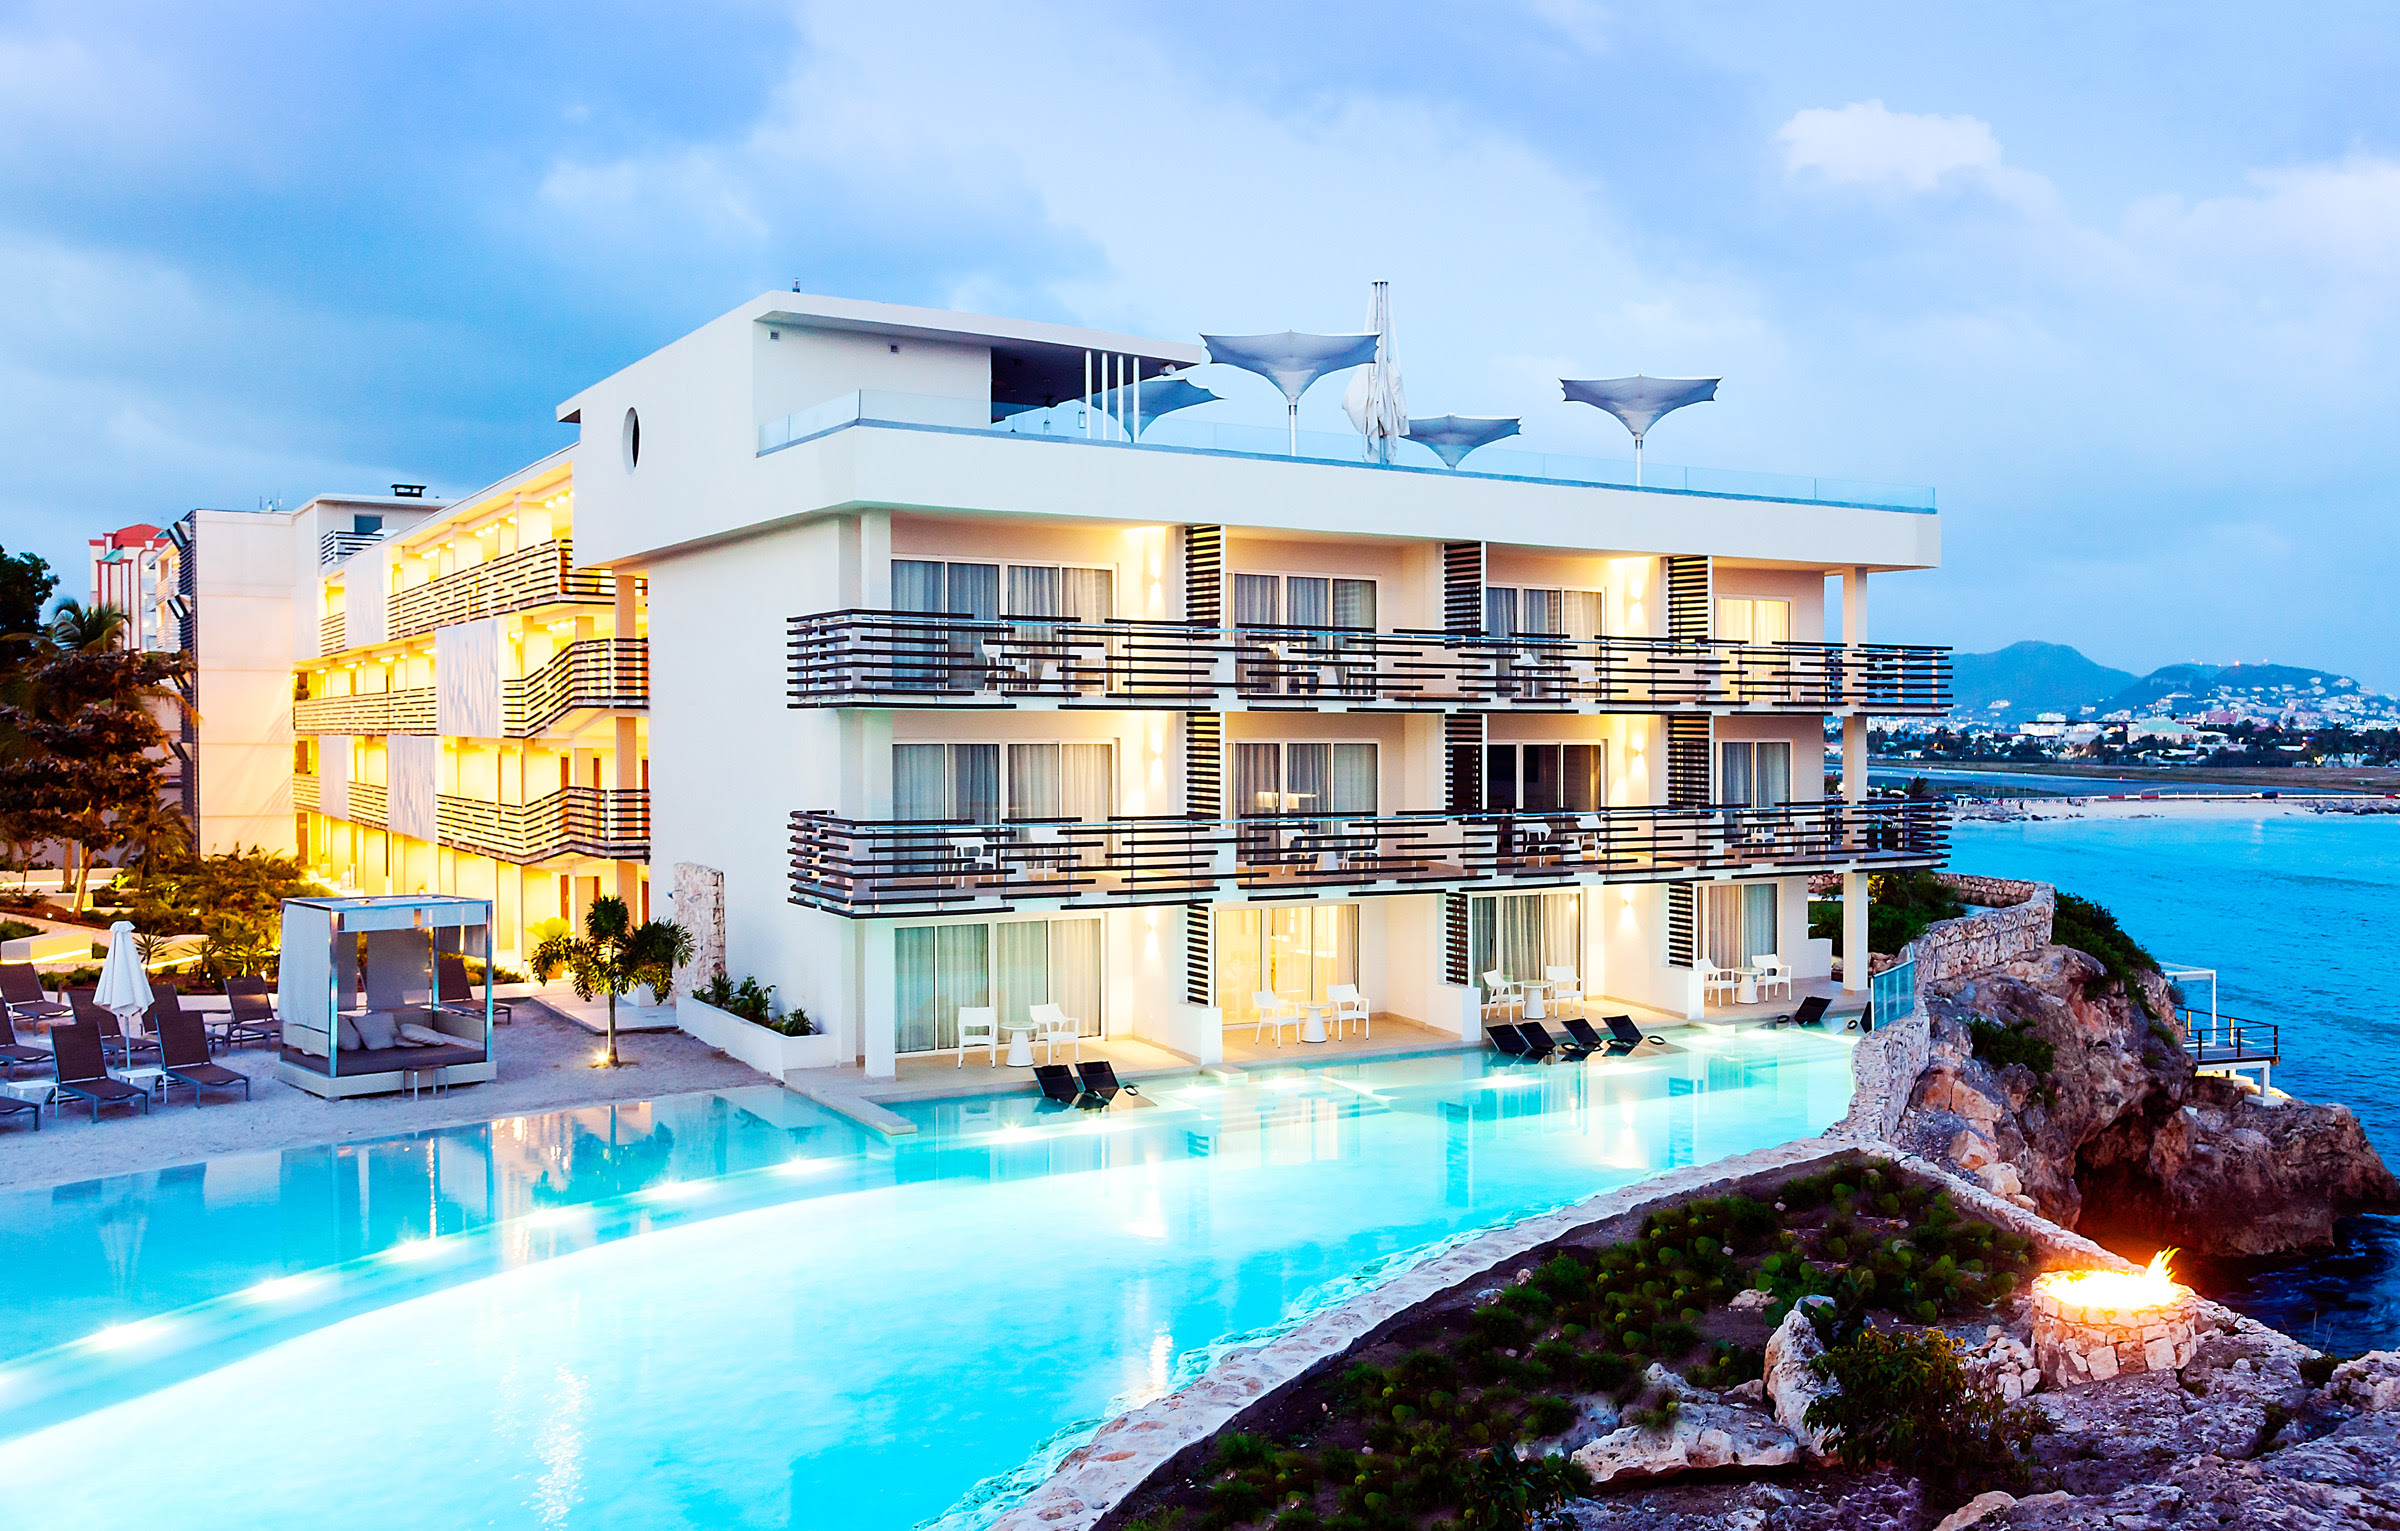 Experience the Next Level of Luxury at Sonesta Ocean Point